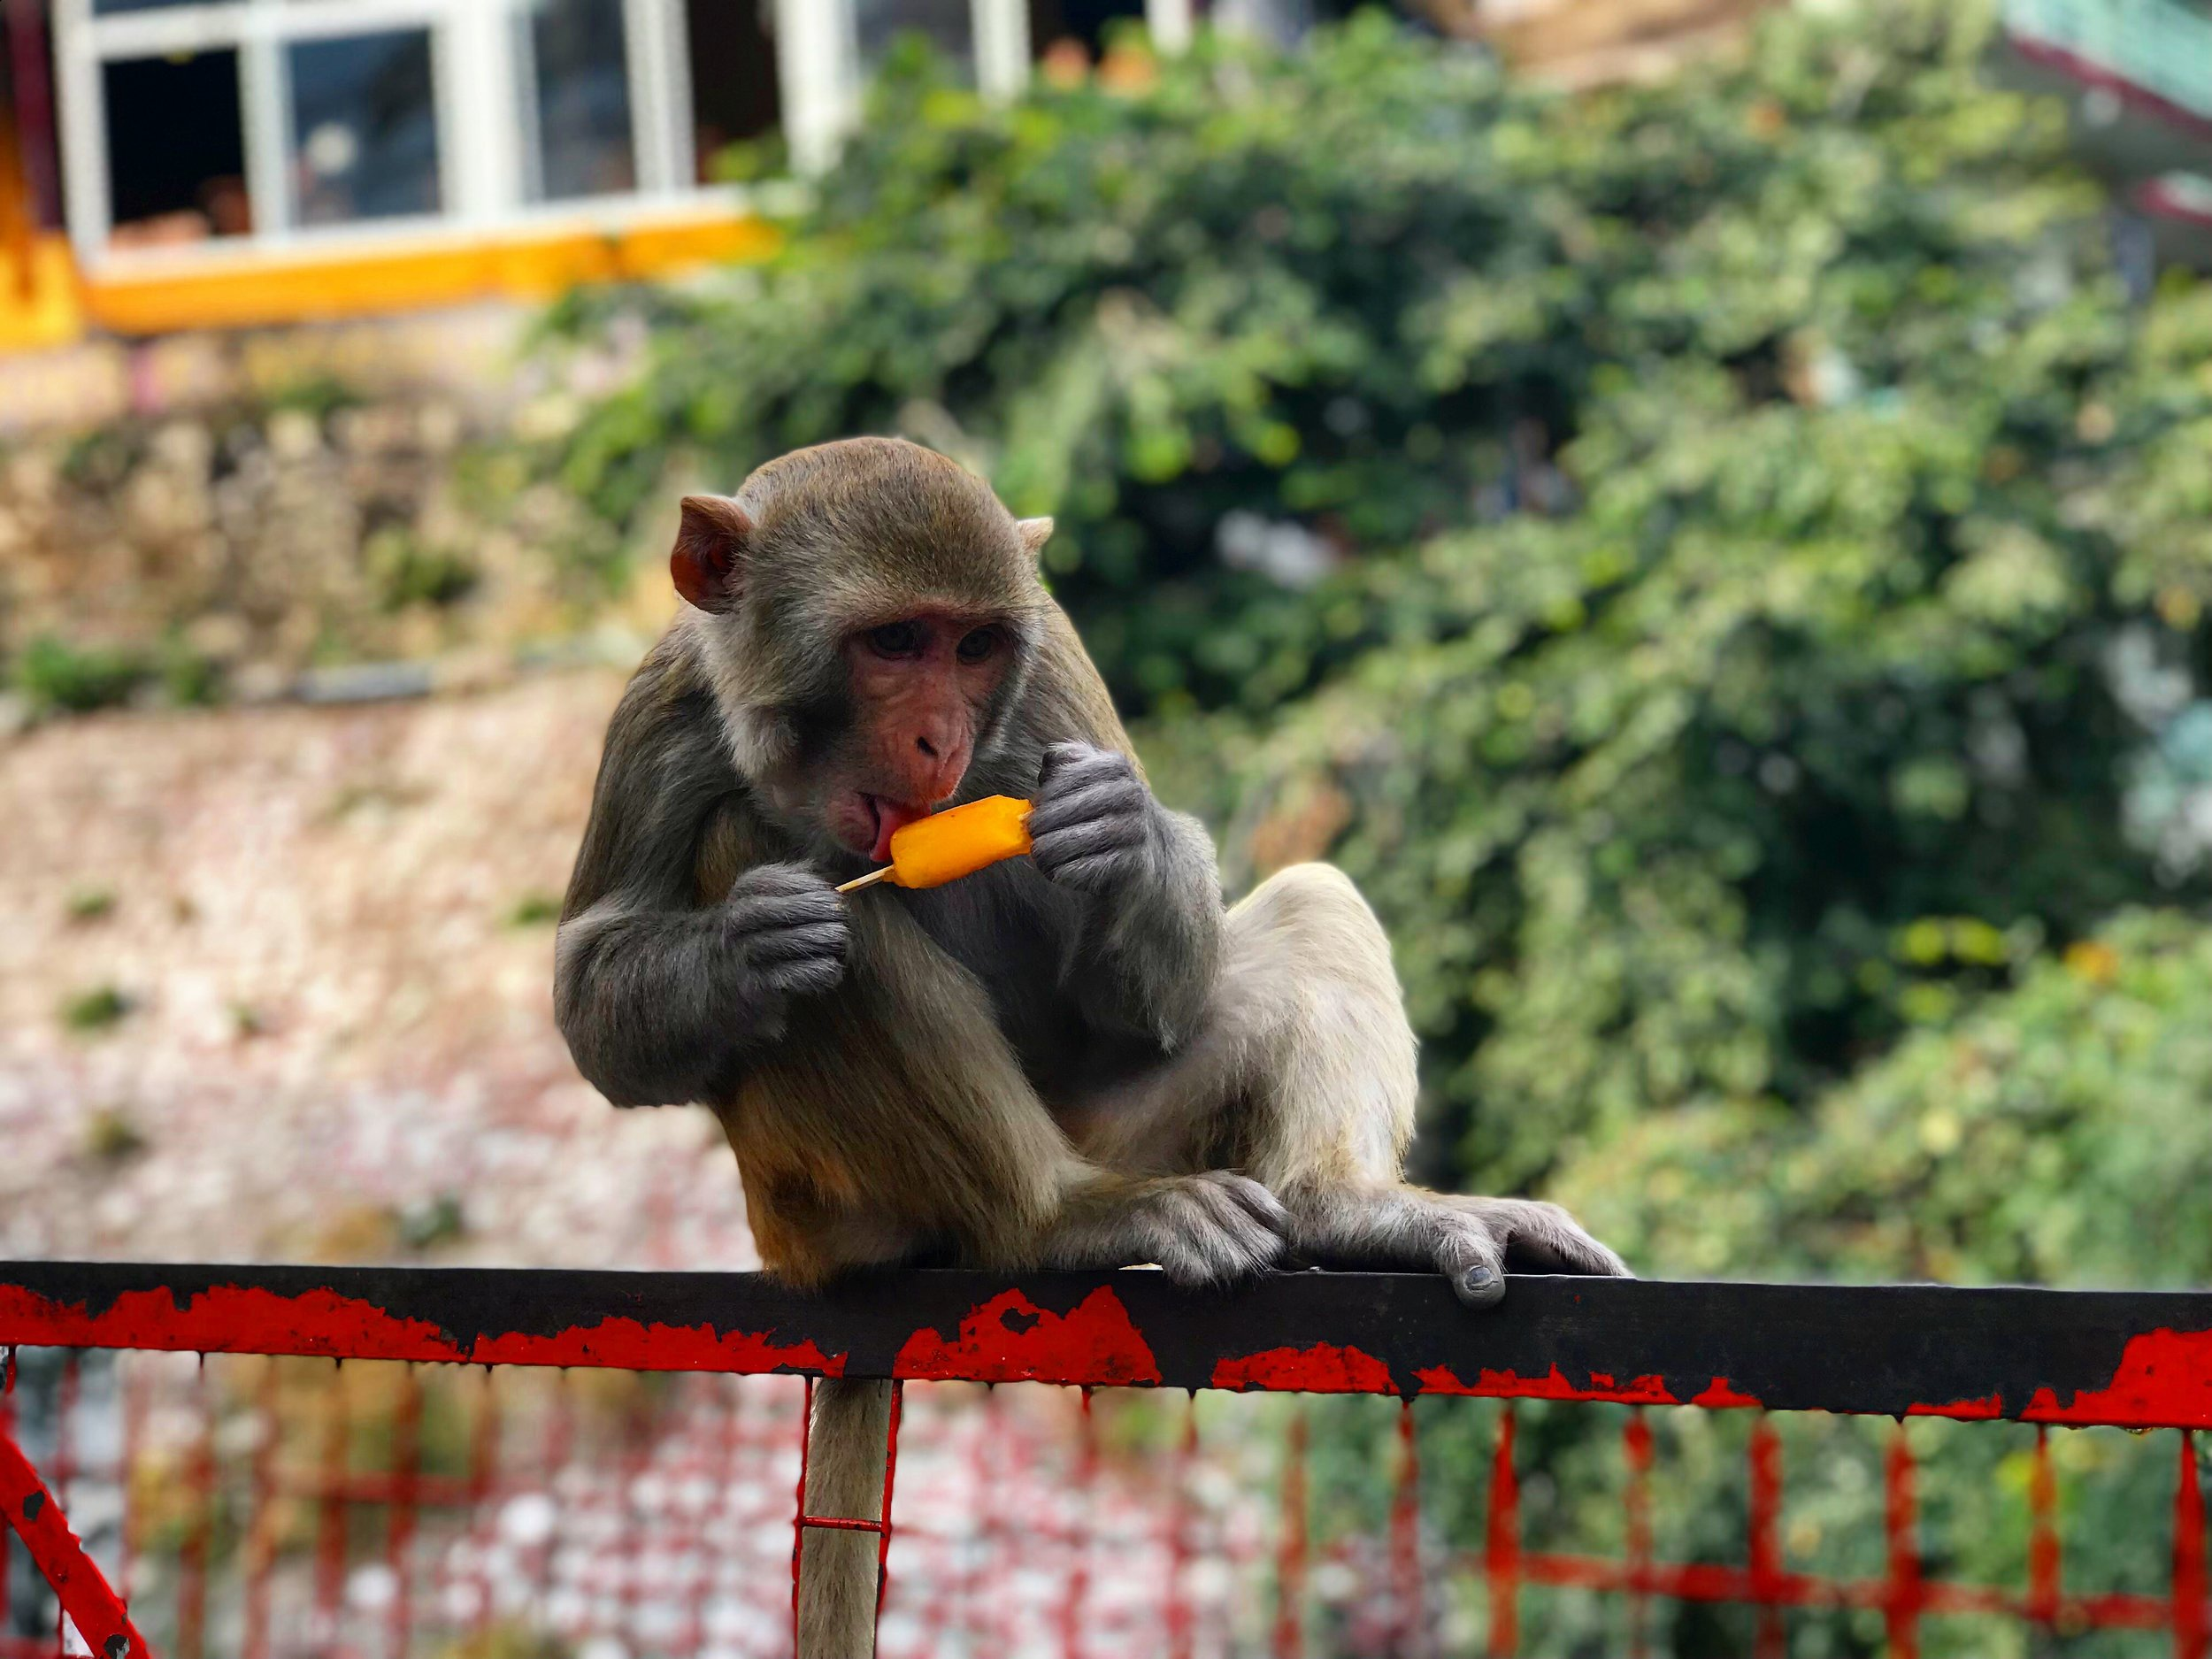 Just a monkey eating a (presumably) stolen ice-lolly.